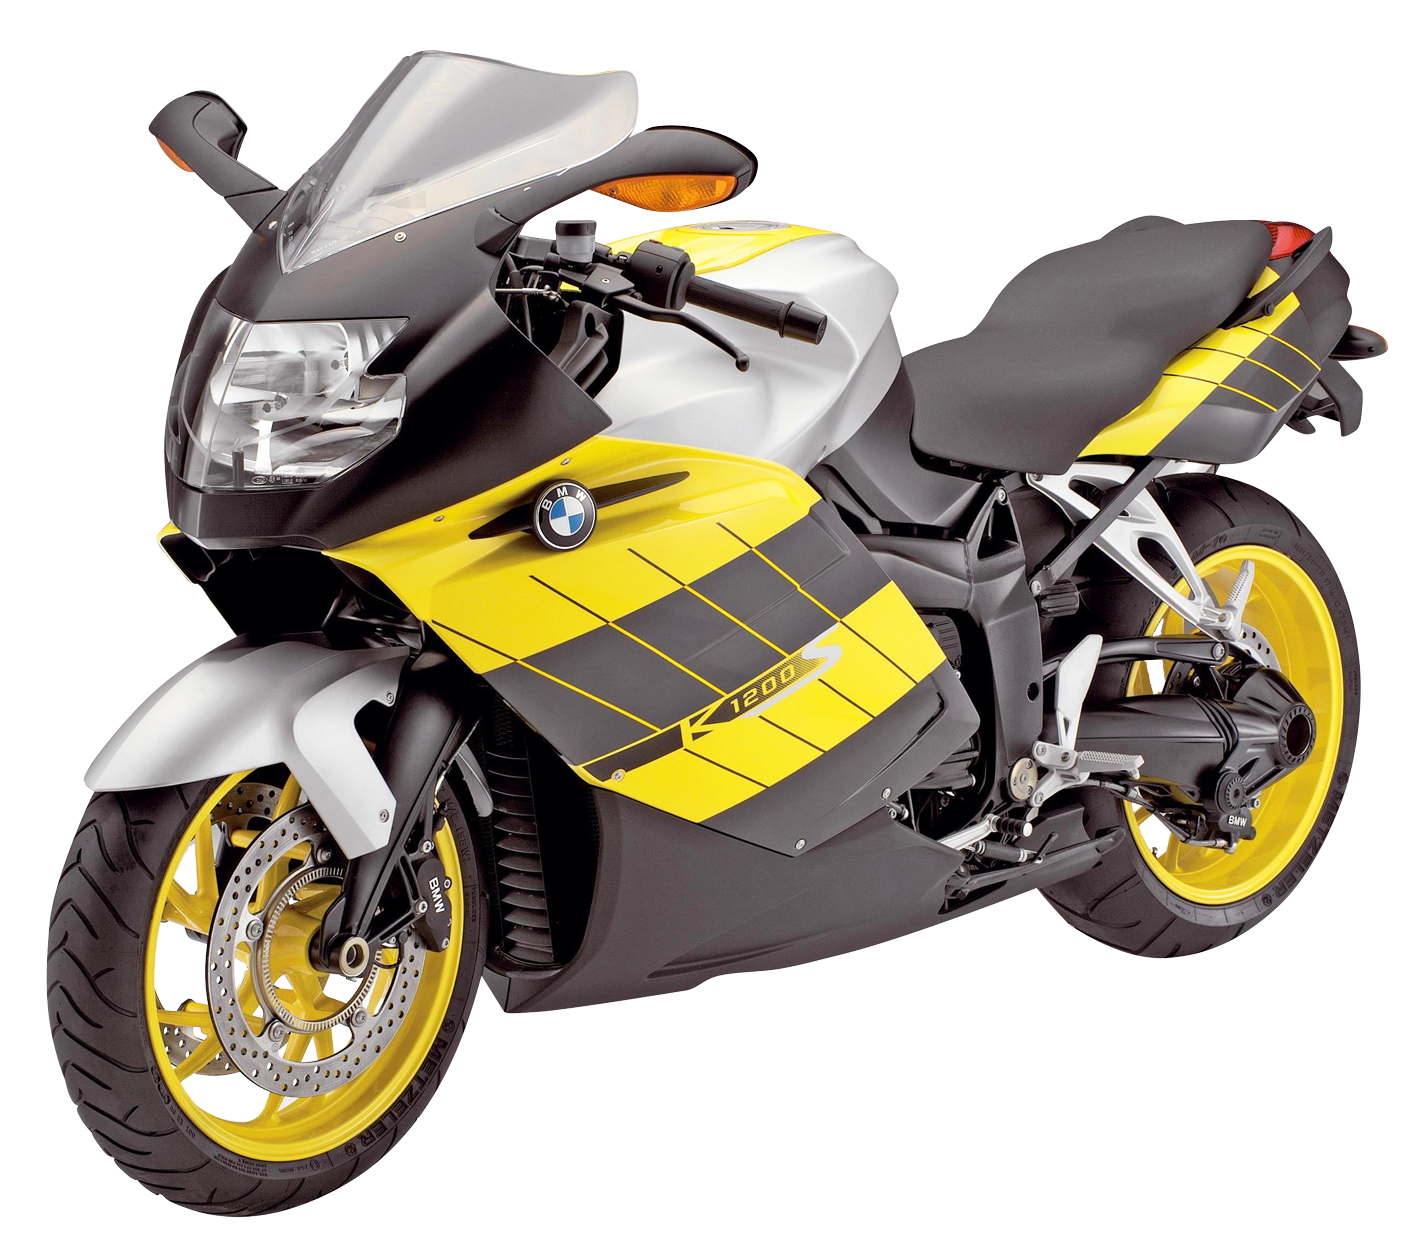 Motorcycle clipart yellow motorcycle. Bmw k s sport